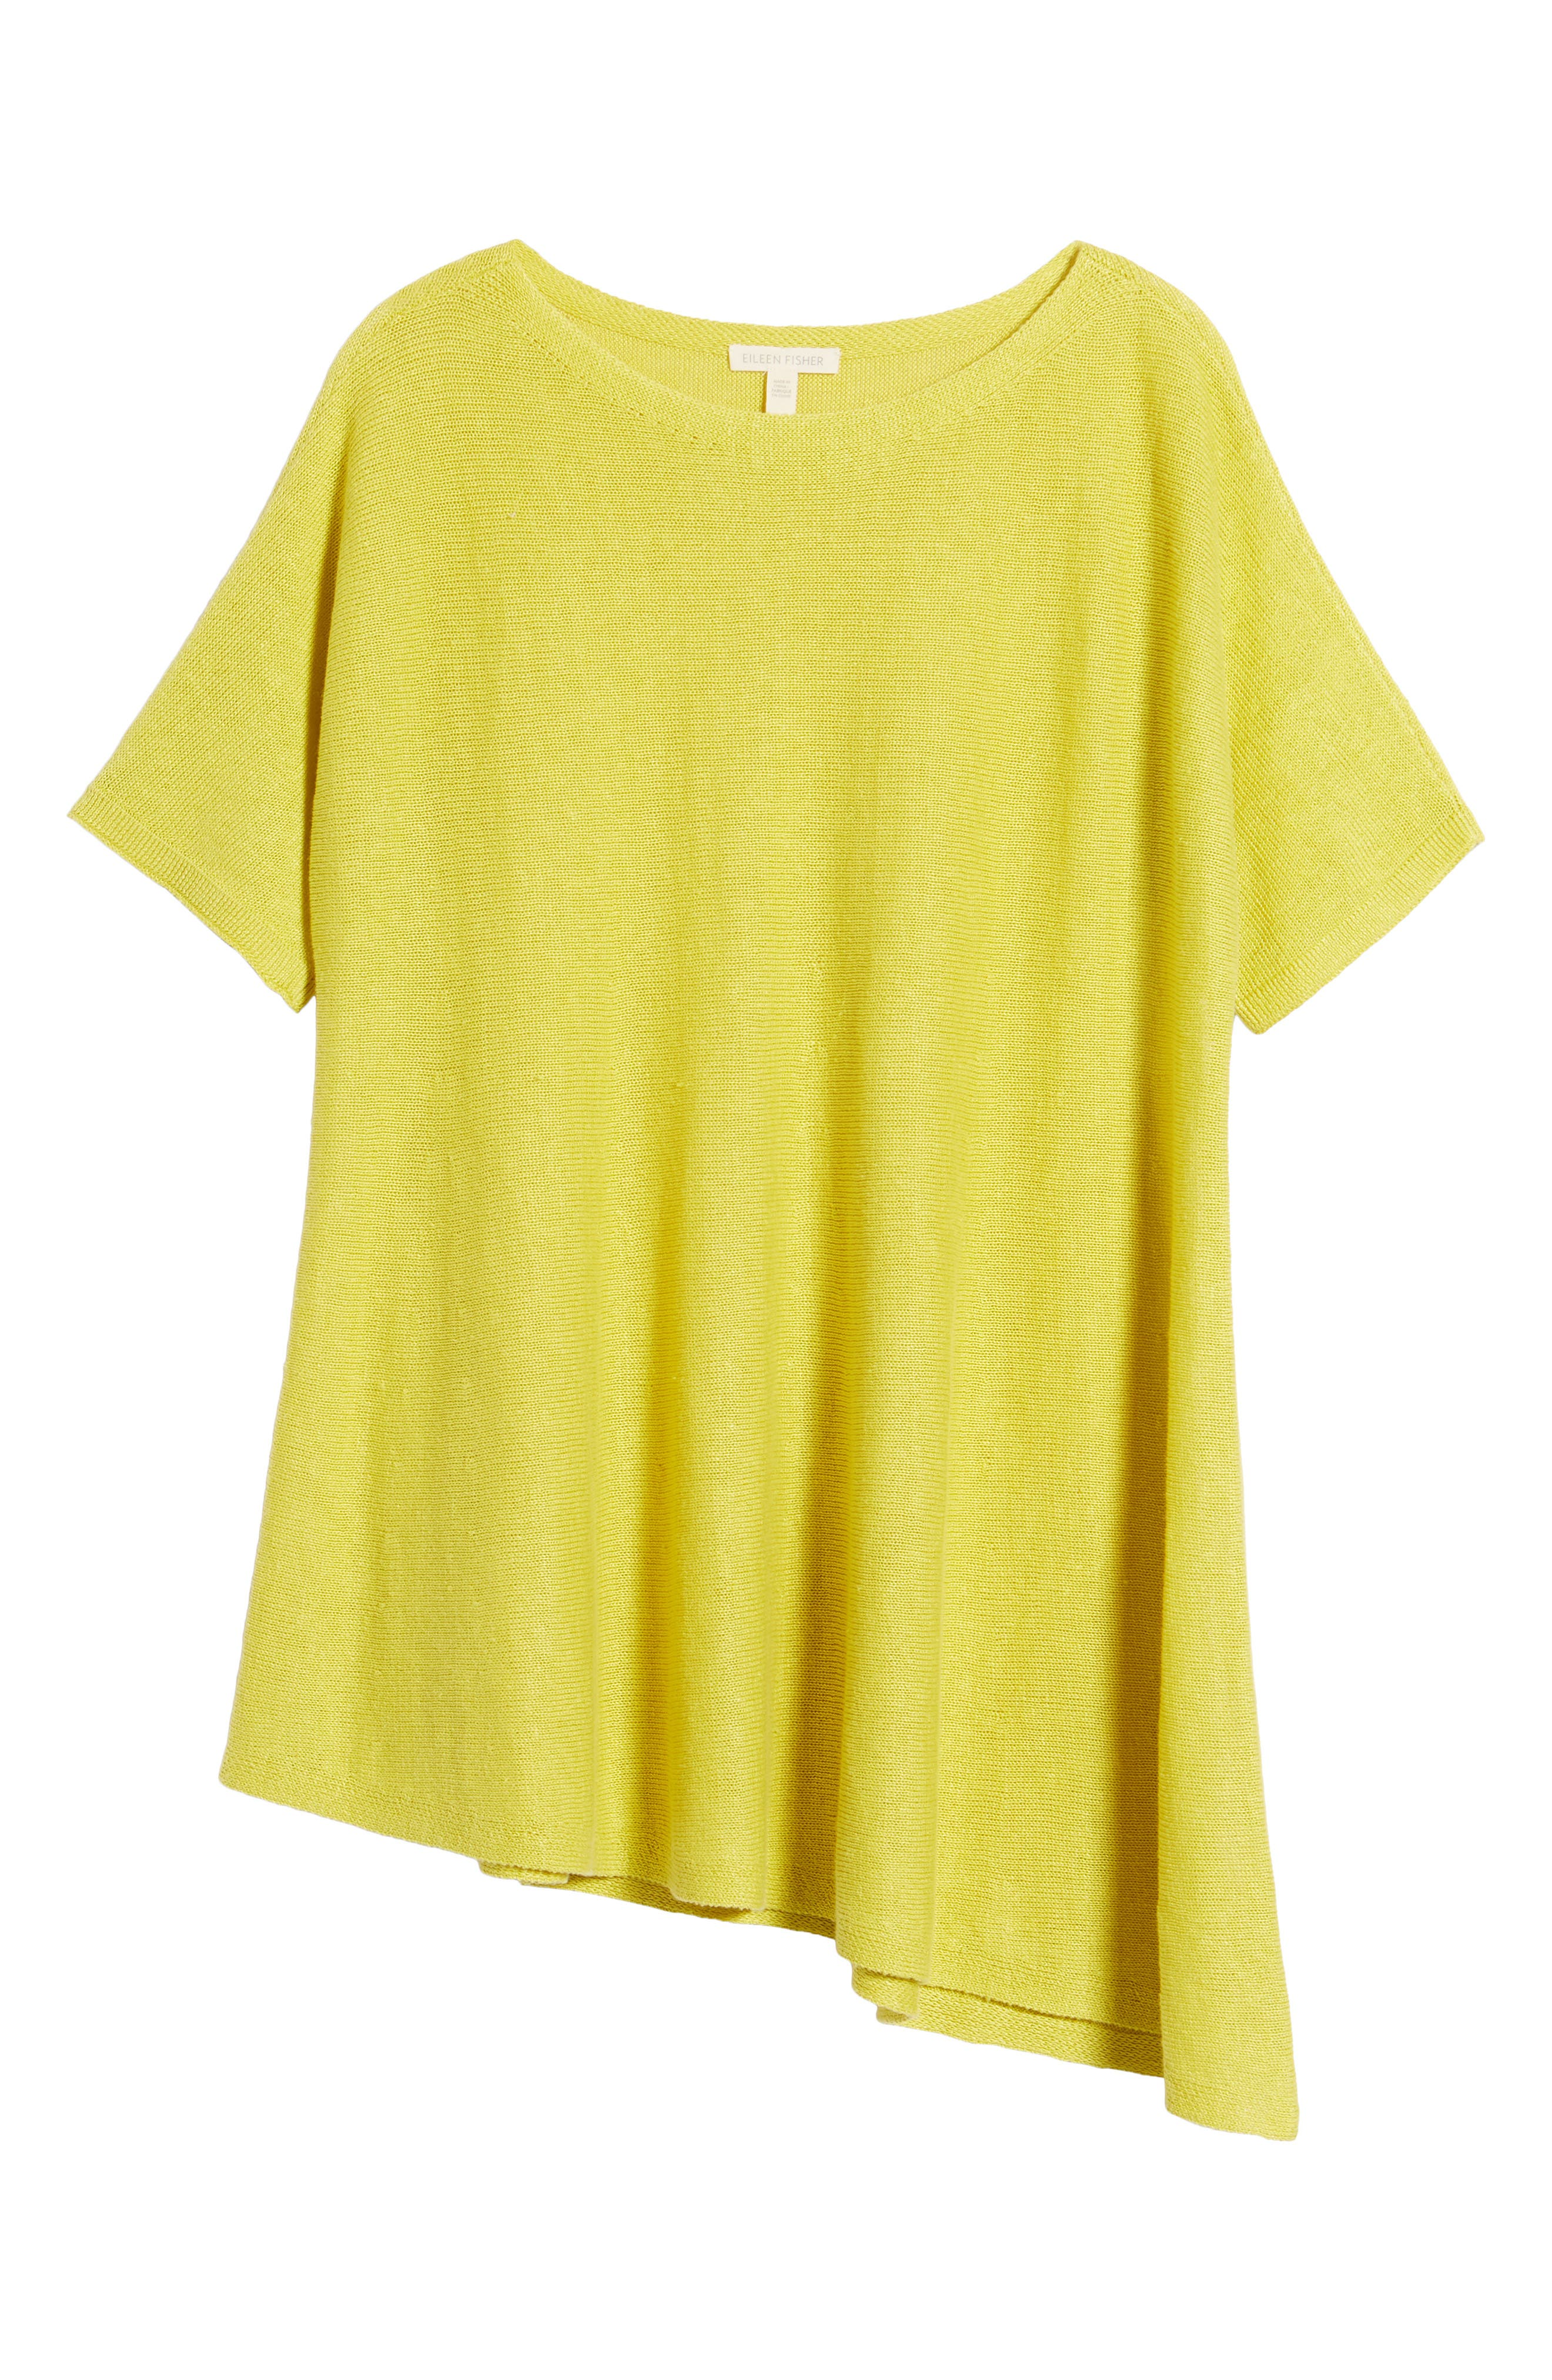 Organic Linen Knit Top,                             Alternate thumbnail 7, color,                             Yarrow